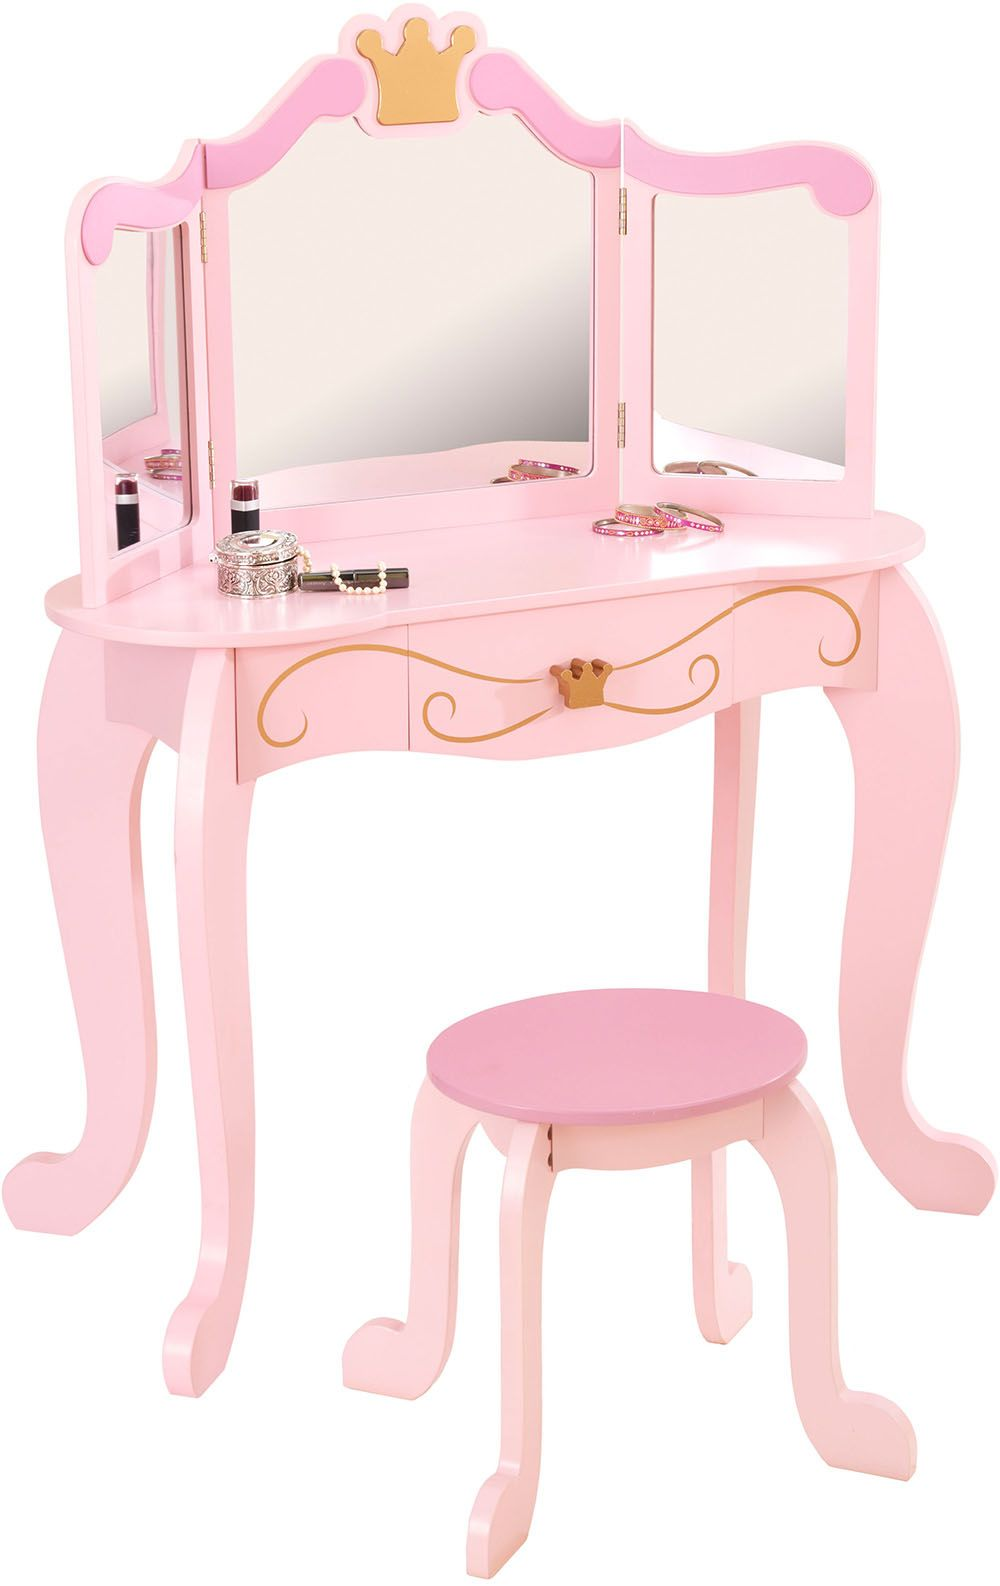 coiffeuse en bois et tabouret rose pour enfant princess. Black Bedroom Furniture Sets. Home Design Ideas